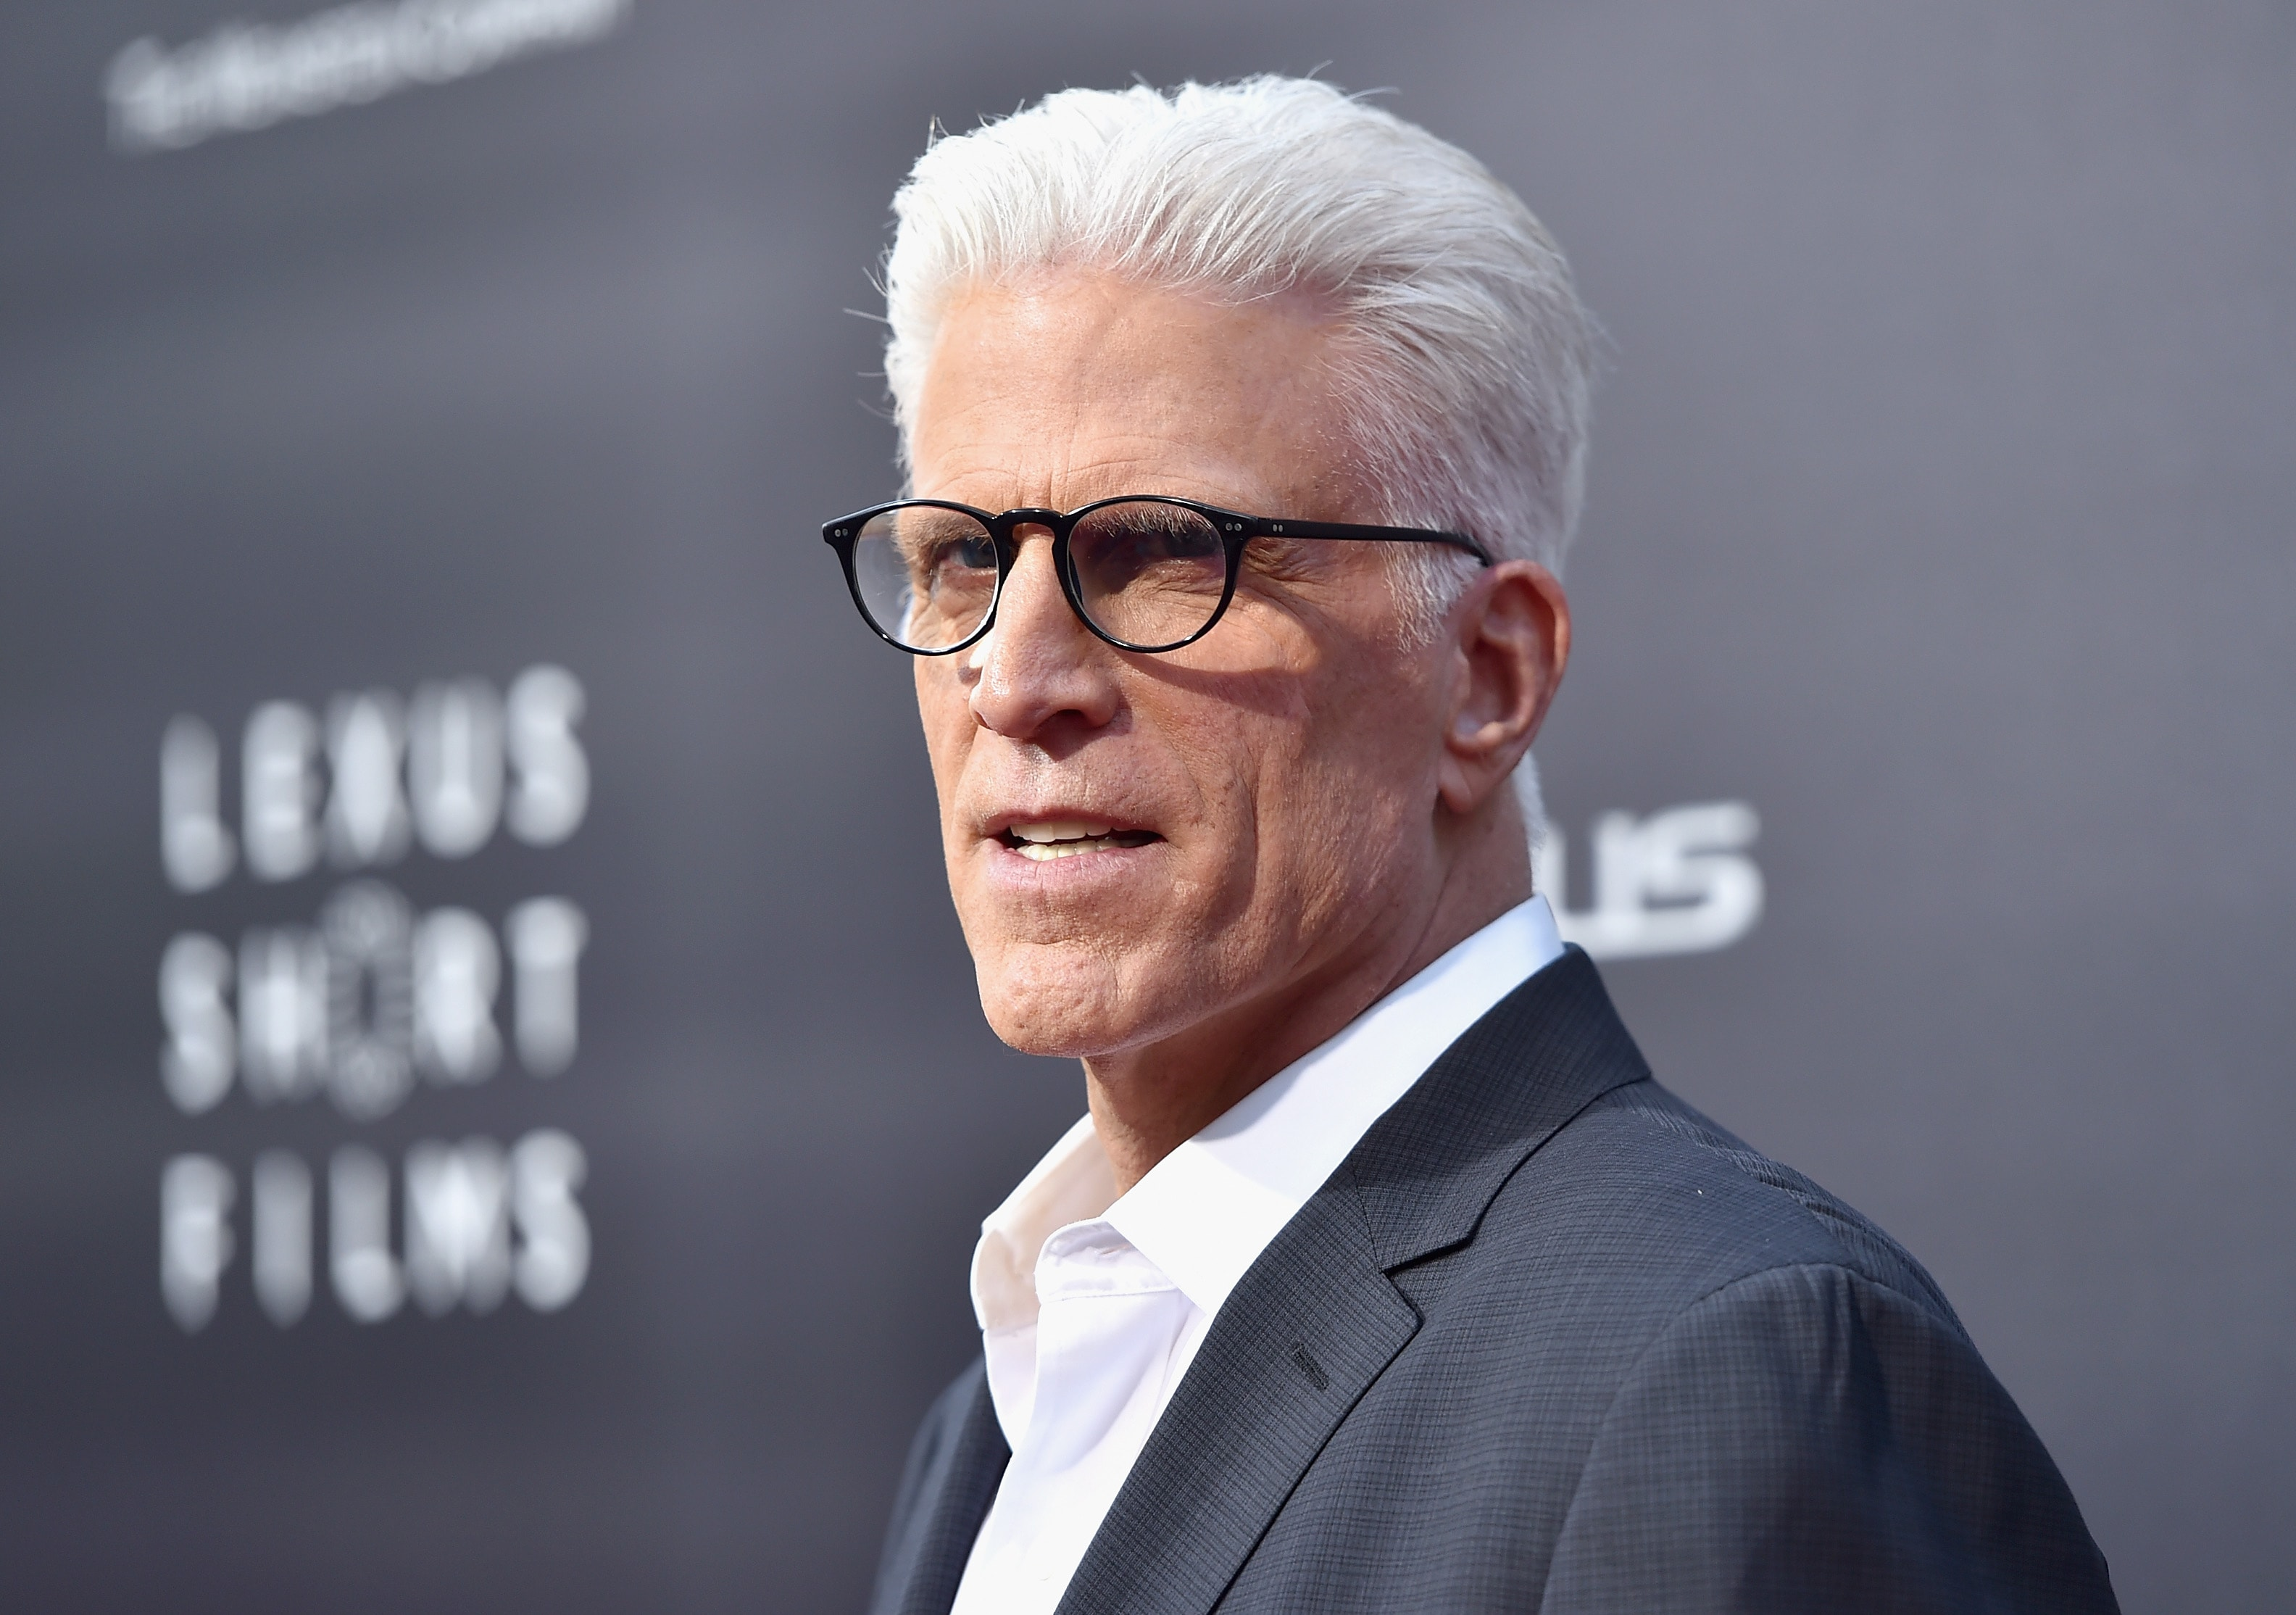 Ted Danson Background